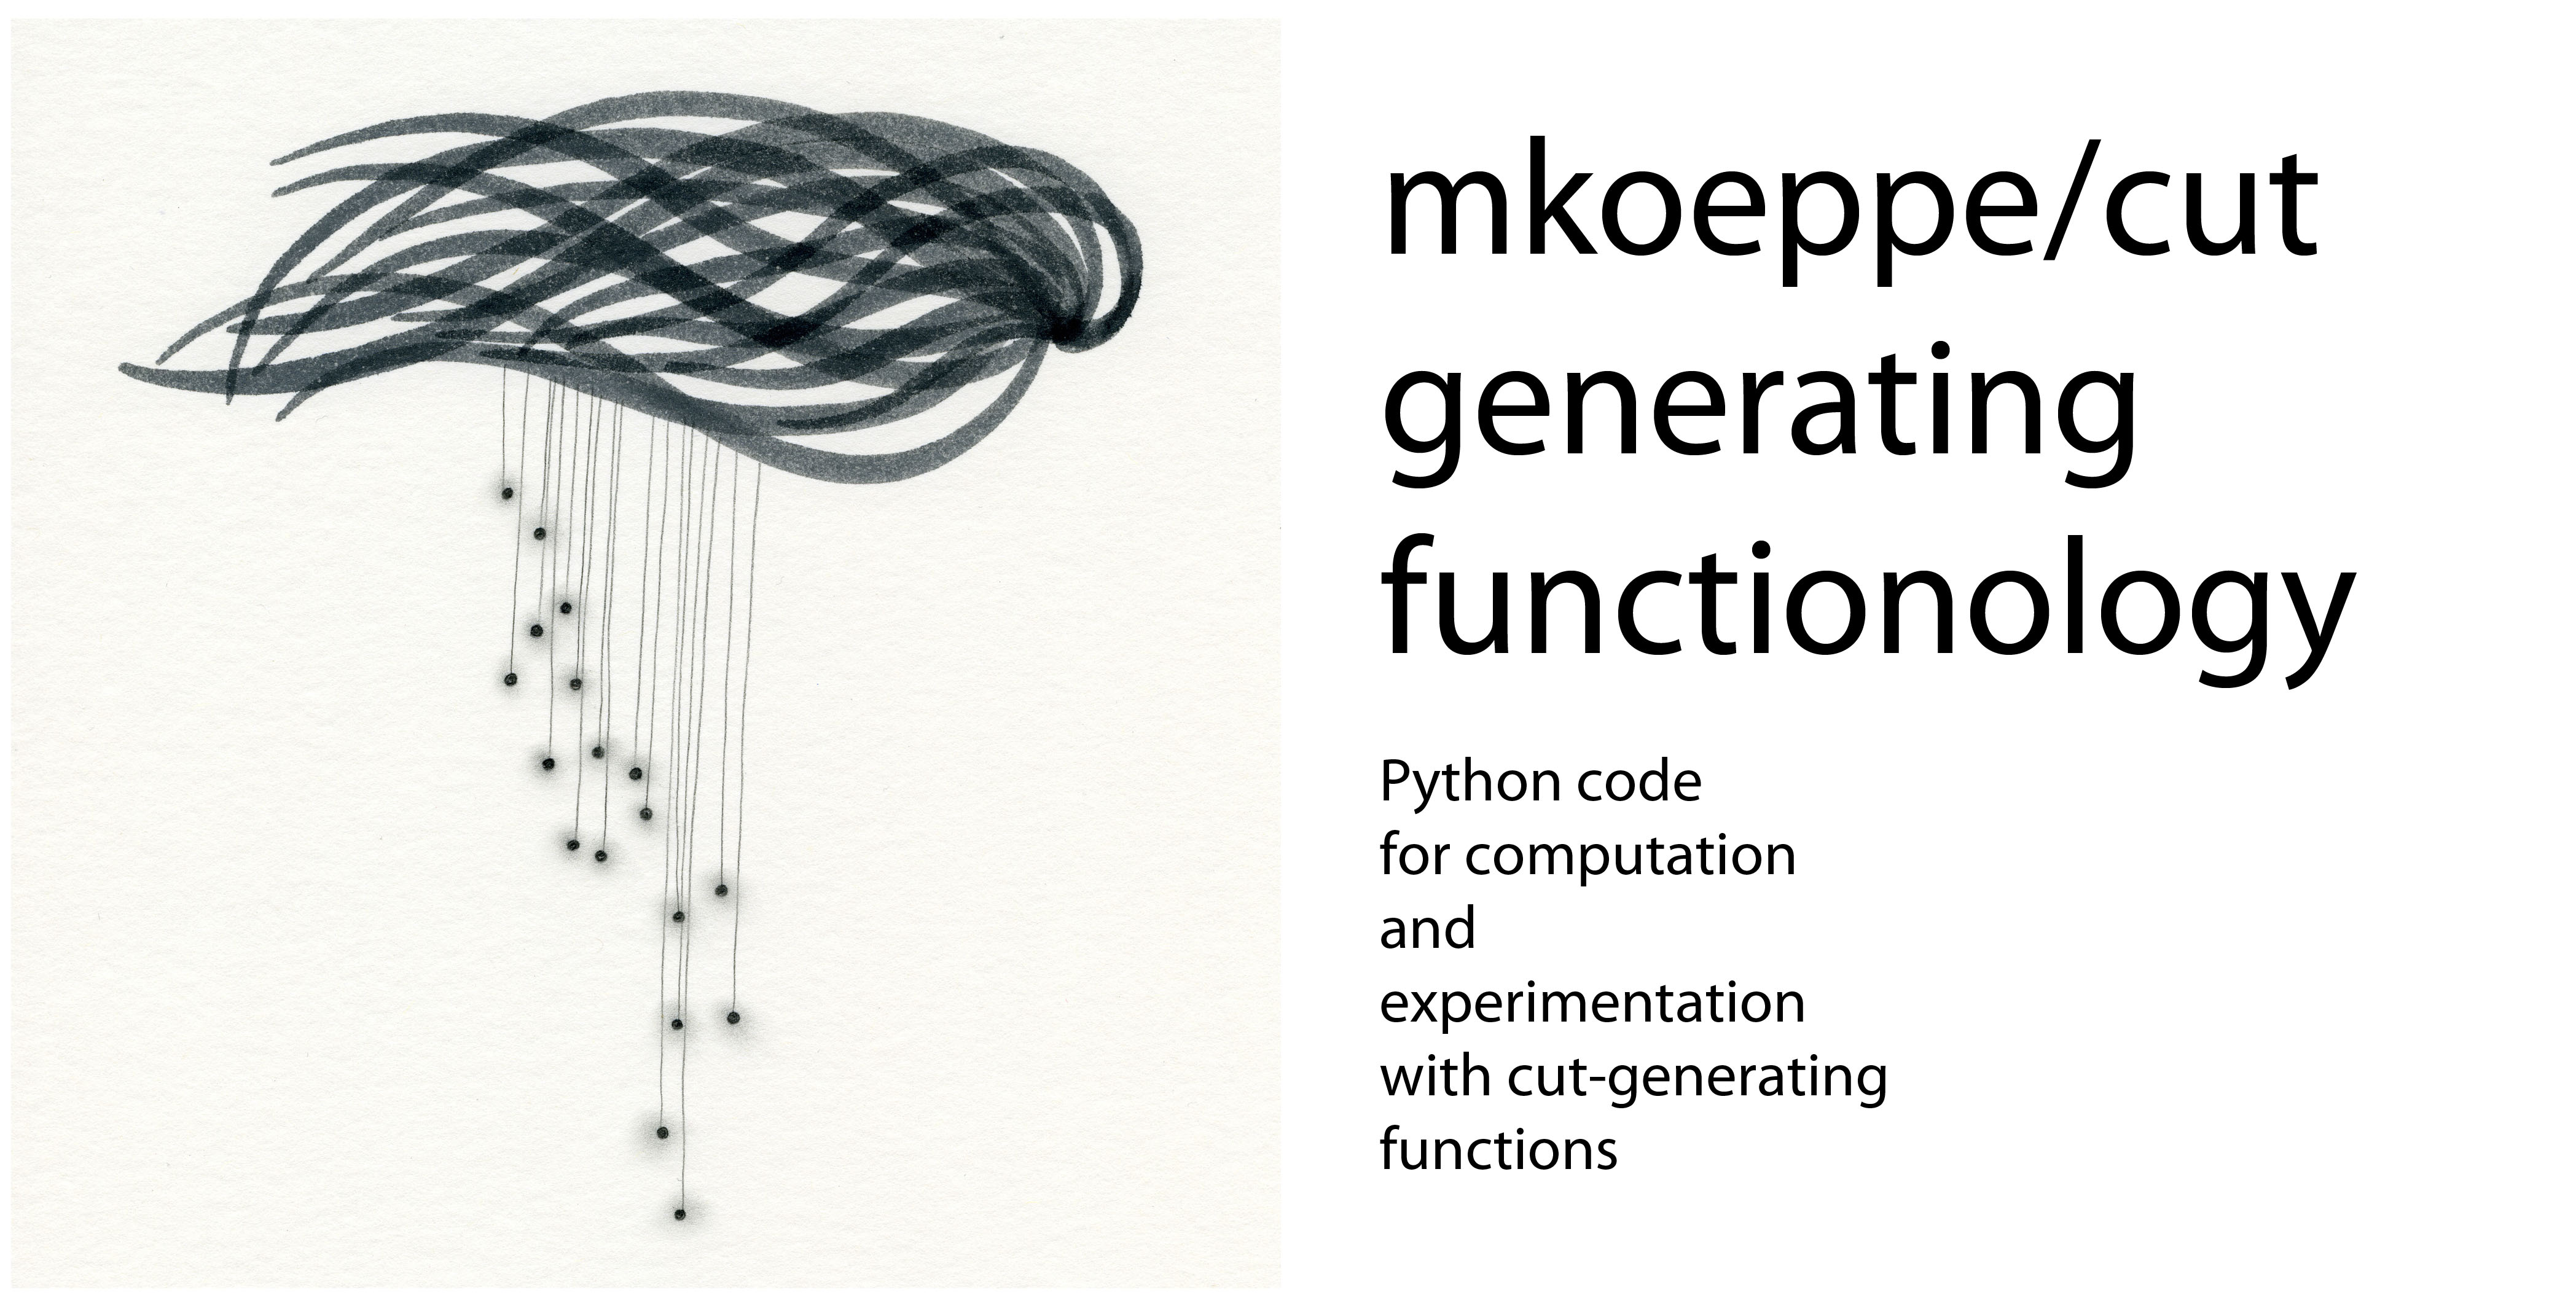 mkoeppe/cutgeneratingfunctionology: Python code for computation and experimentation with cut-generating functions